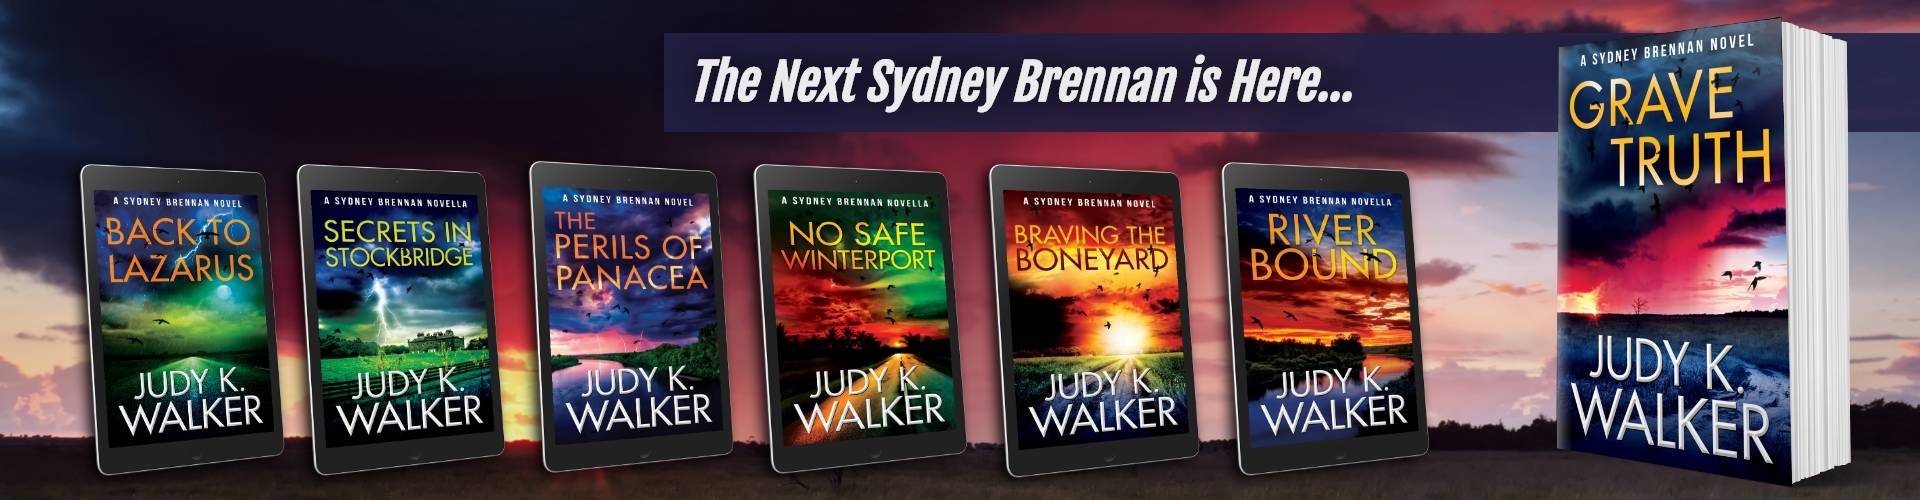 All Sydney Brennan covers with newest addition, Grave Truth